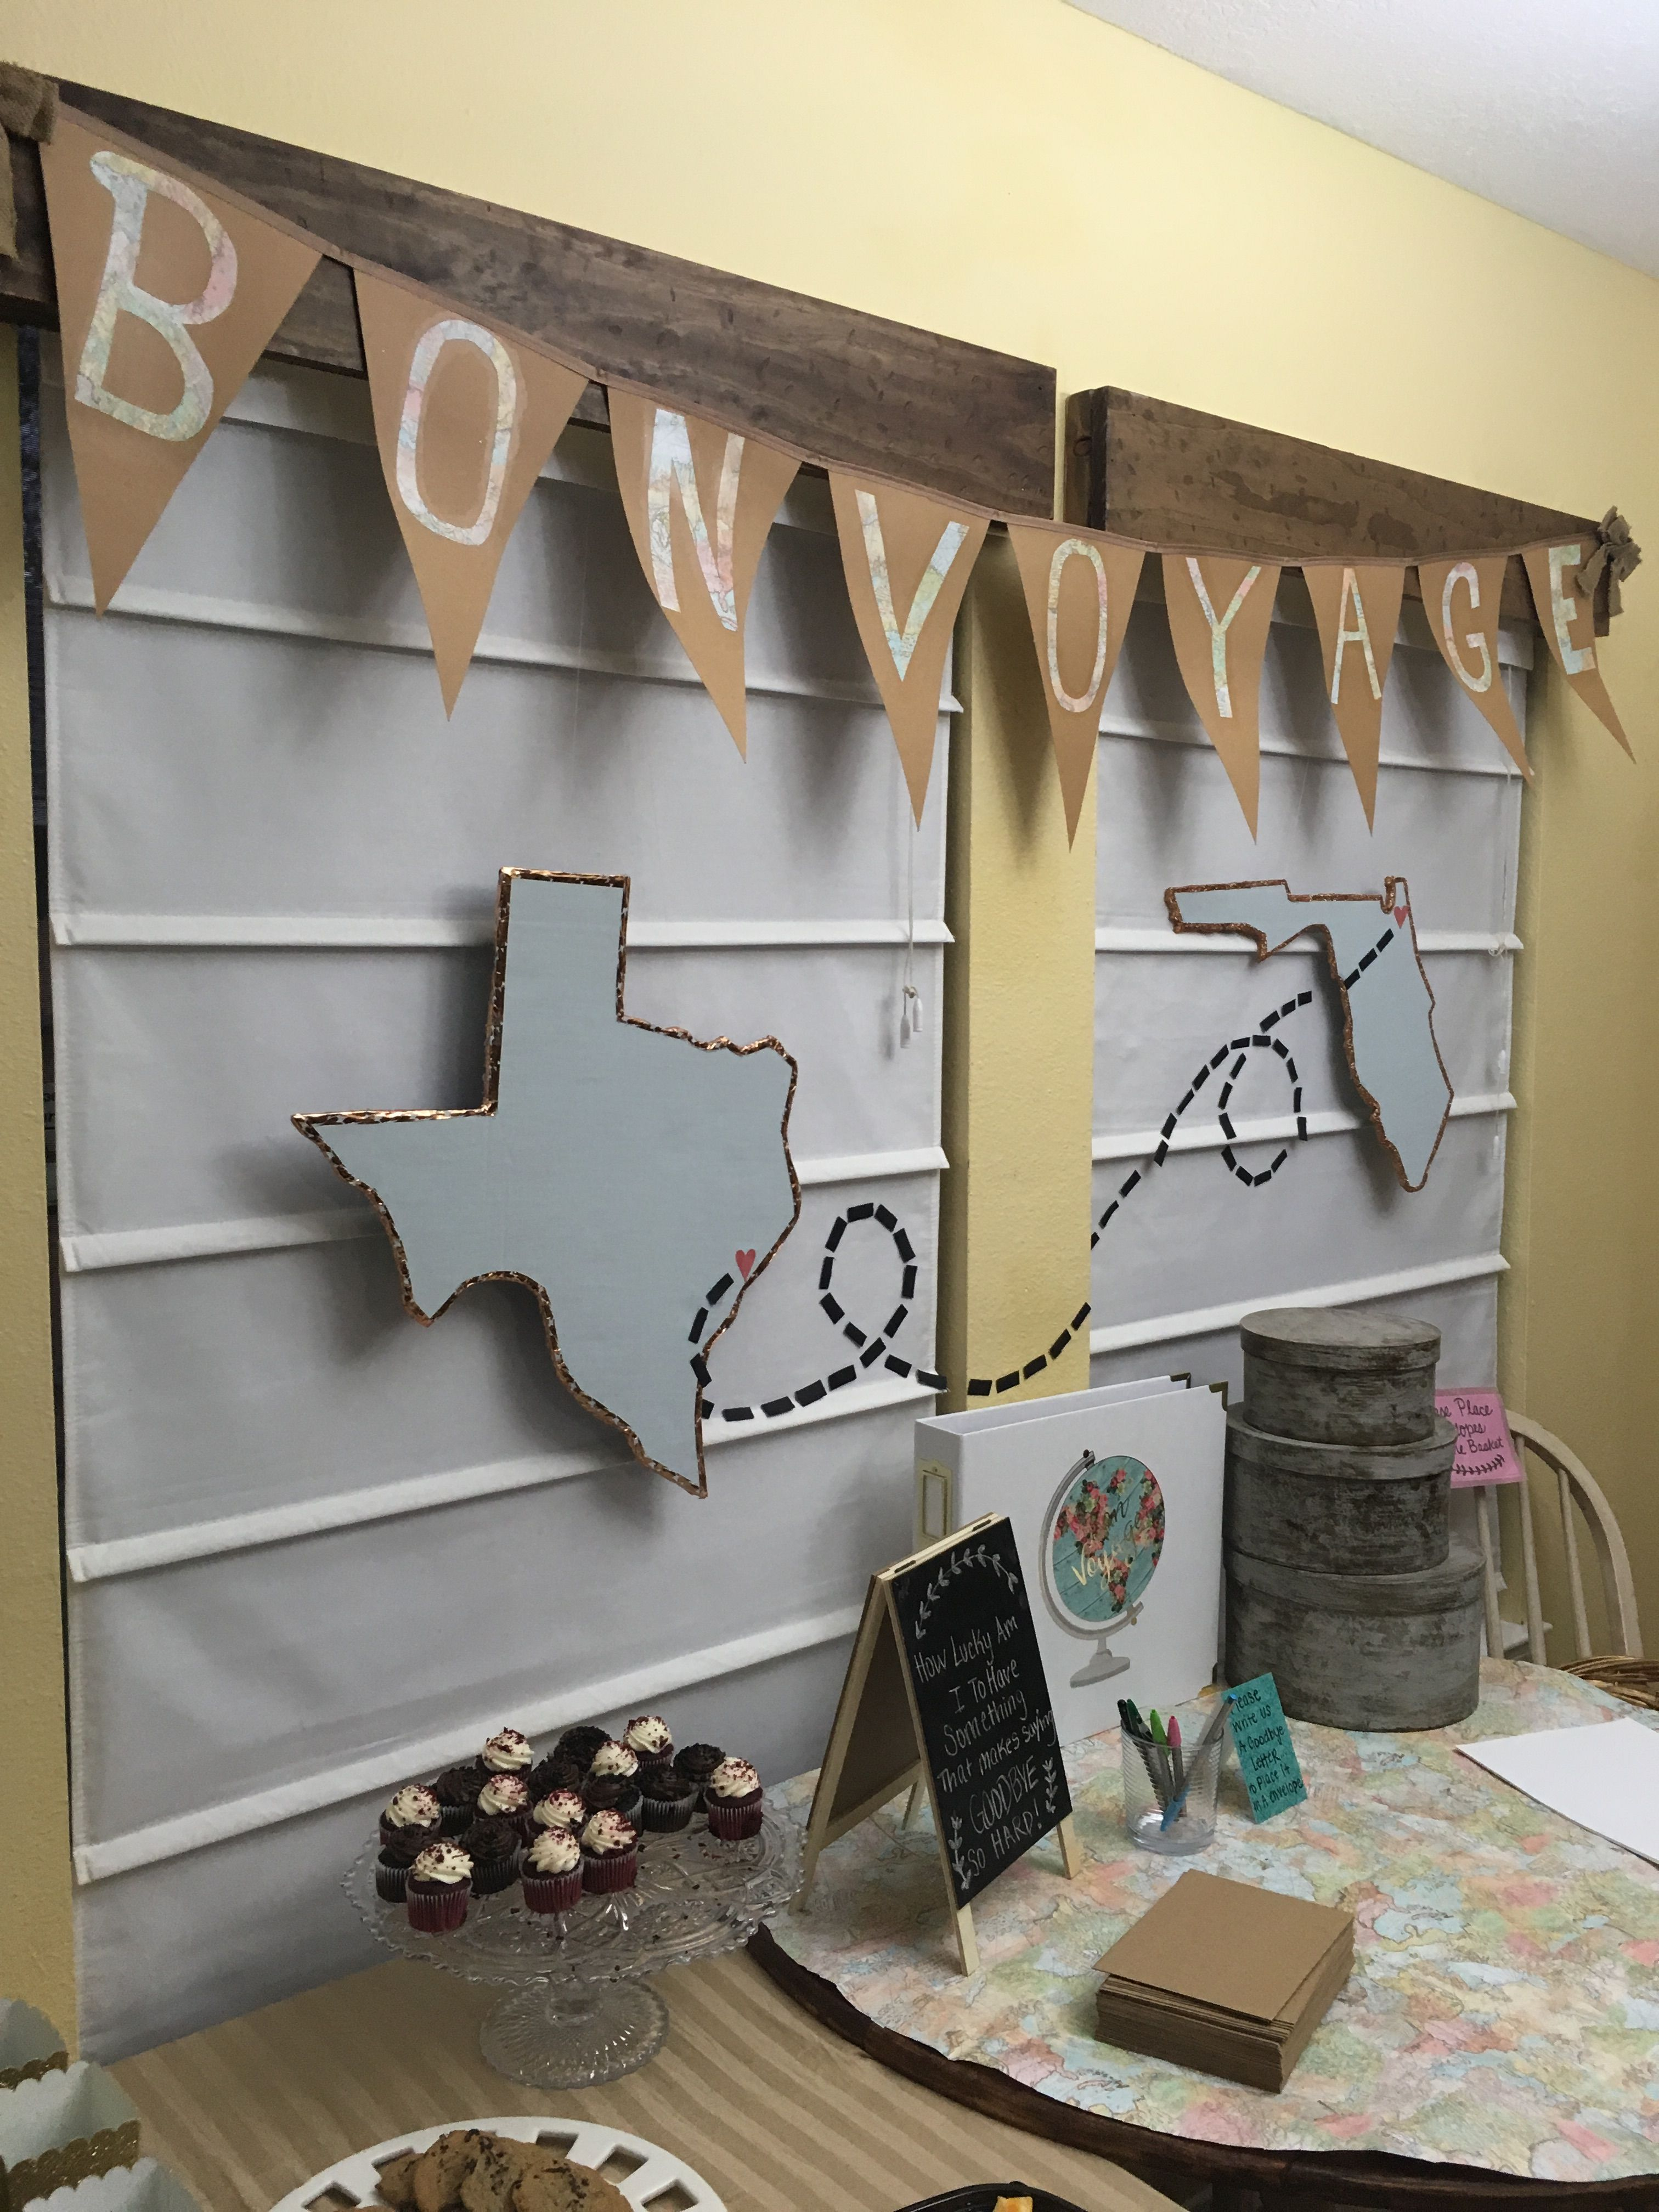 75 Good Inexpensive Gifts For Coworkers Party Ideas Pinterest